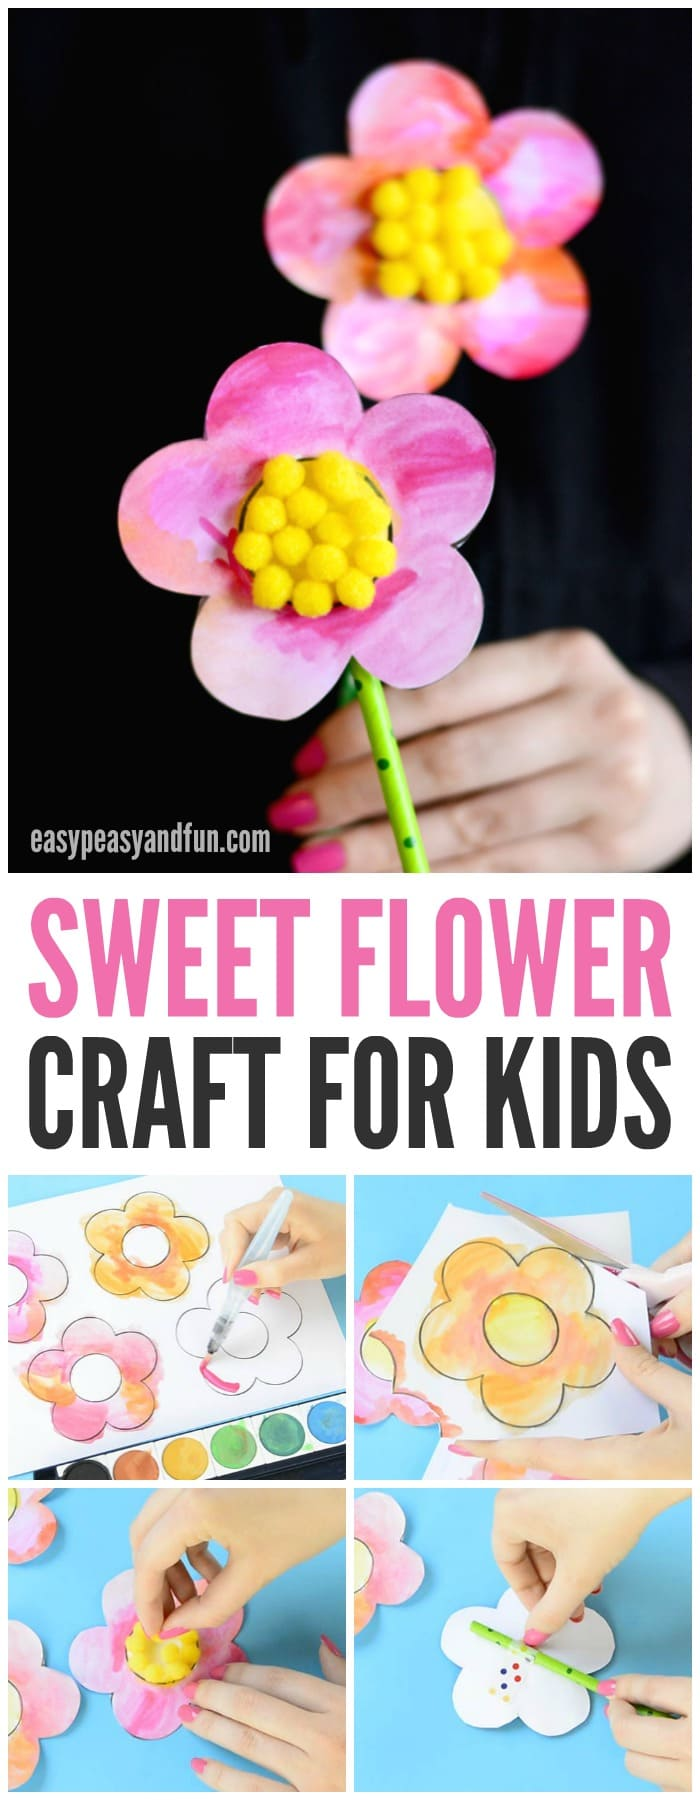 Sweet flower craft with pom poms and printable template for Crafts to make for kids